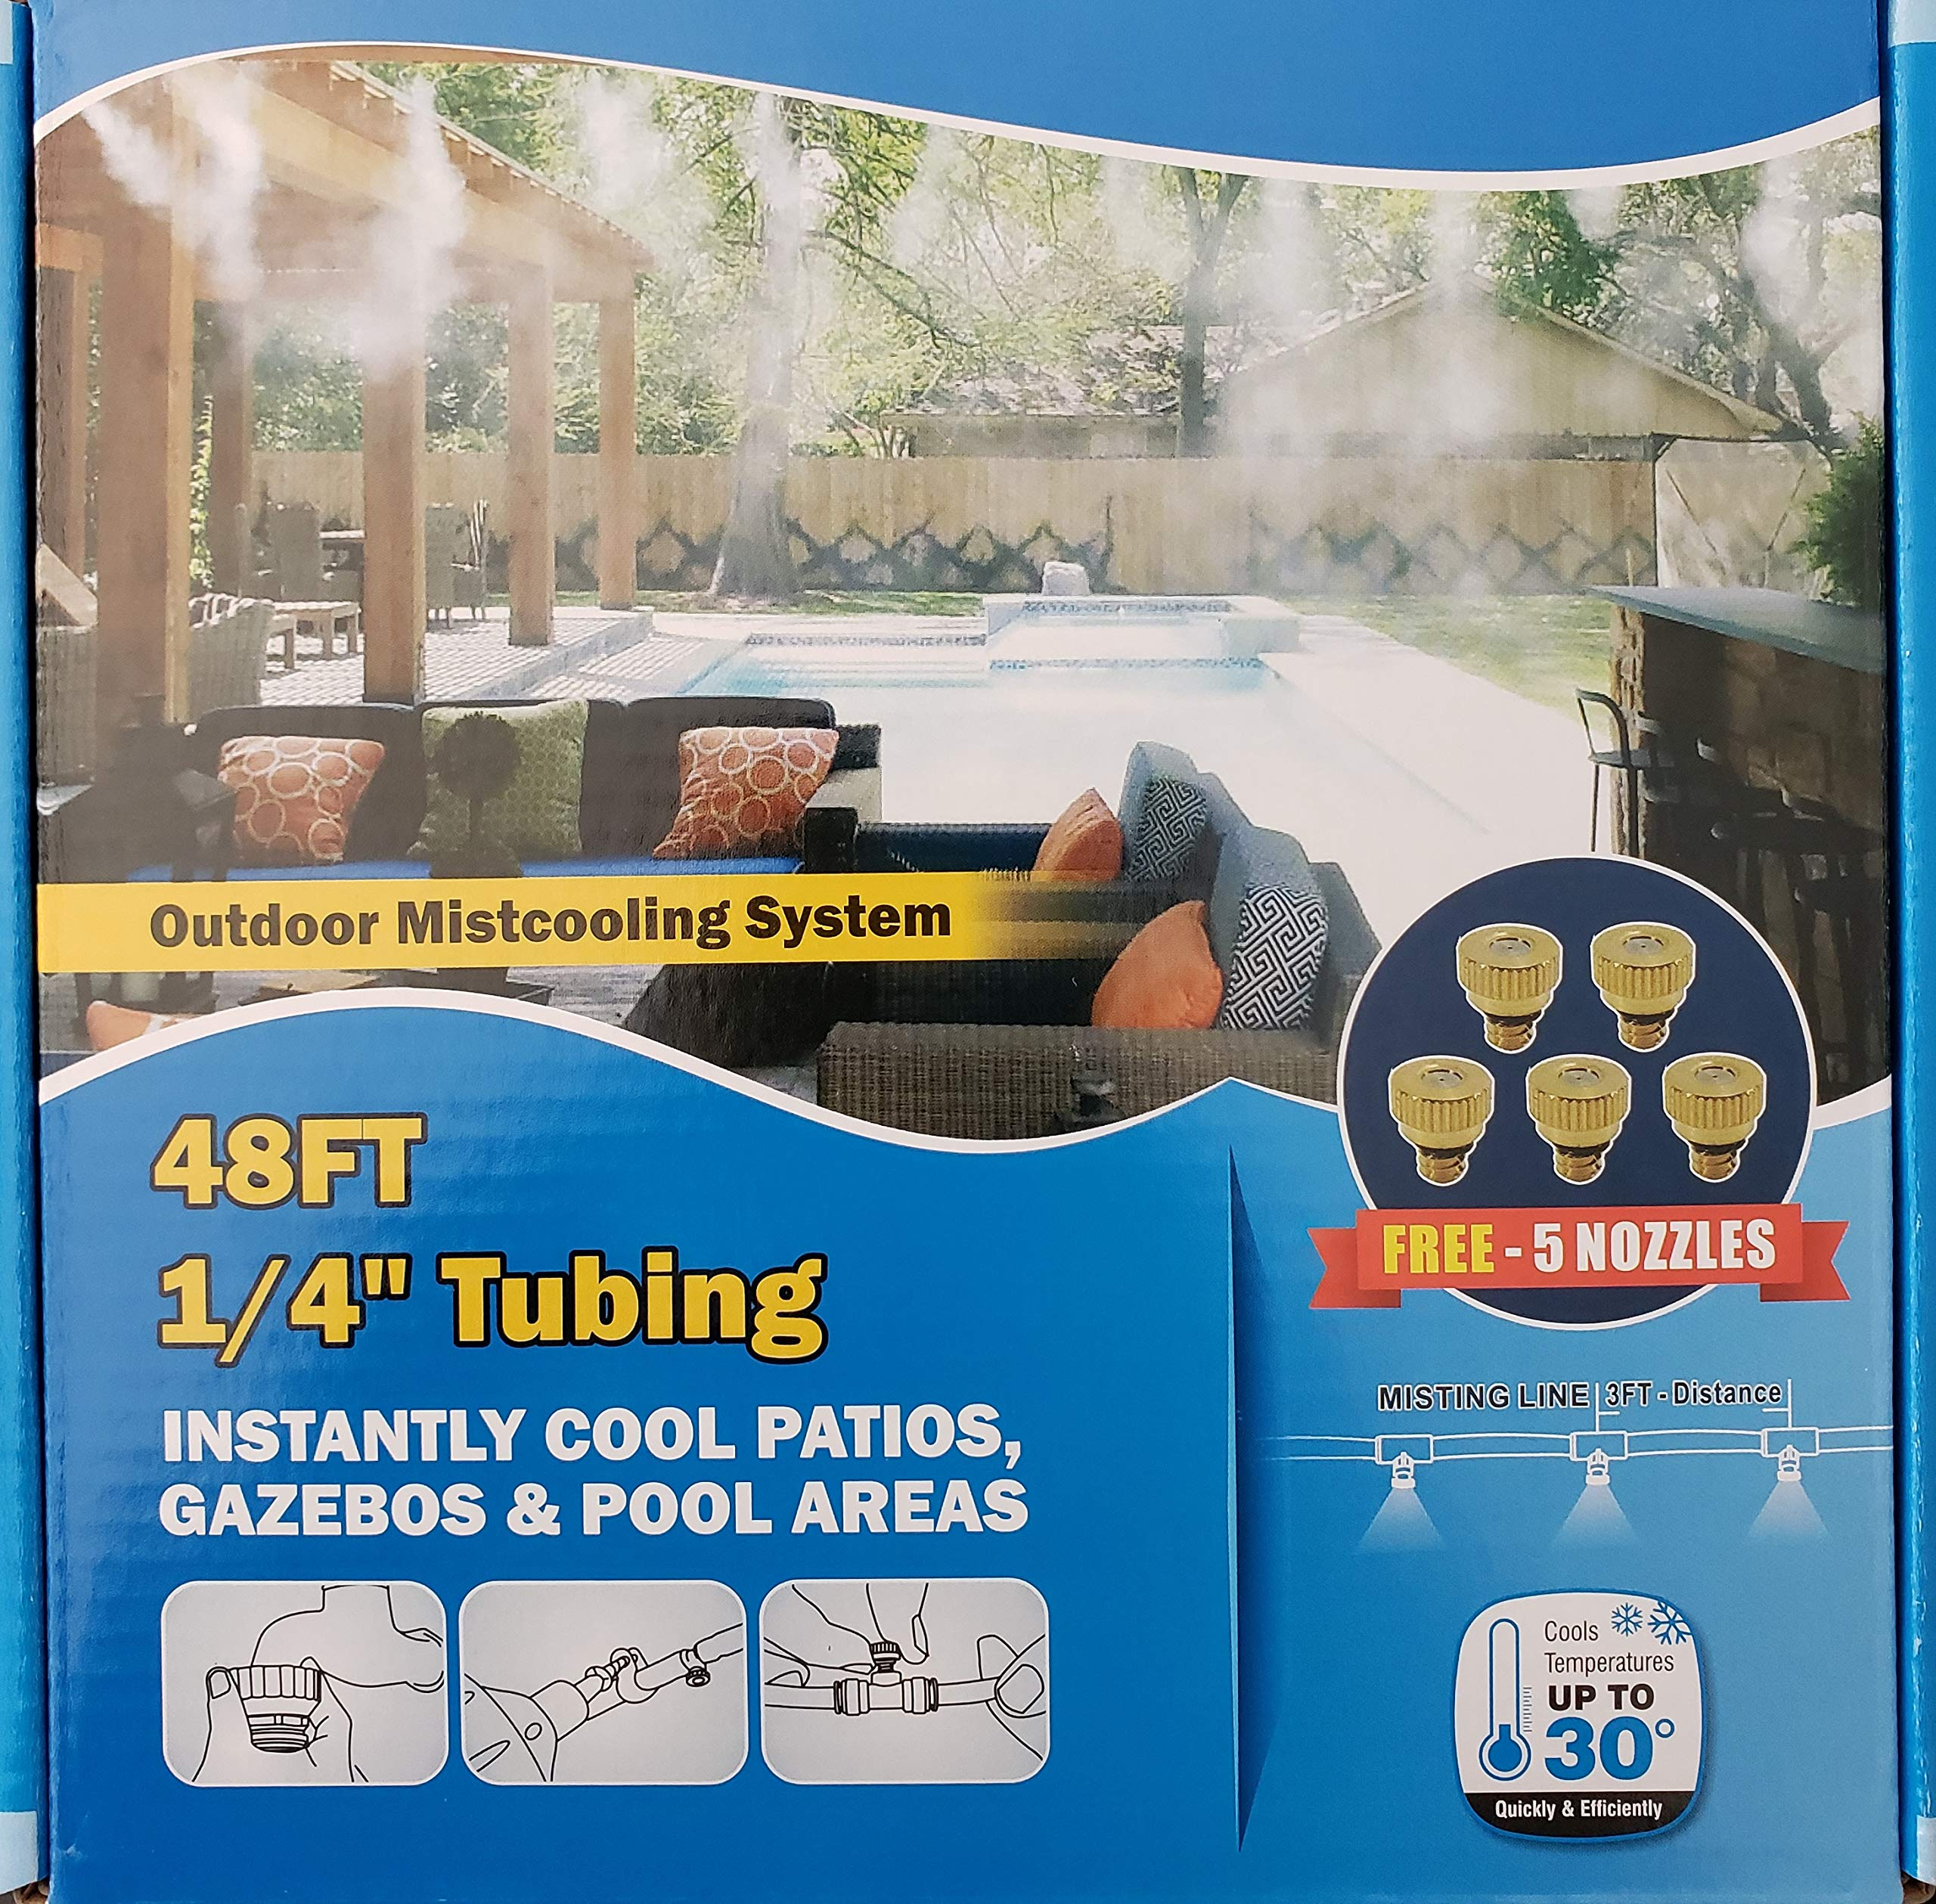 Hydrobreeze Outdoor Cooling System 48 Ft 1/4'' BeigeTubing - 12 Nozzles System by Hydrobreeze